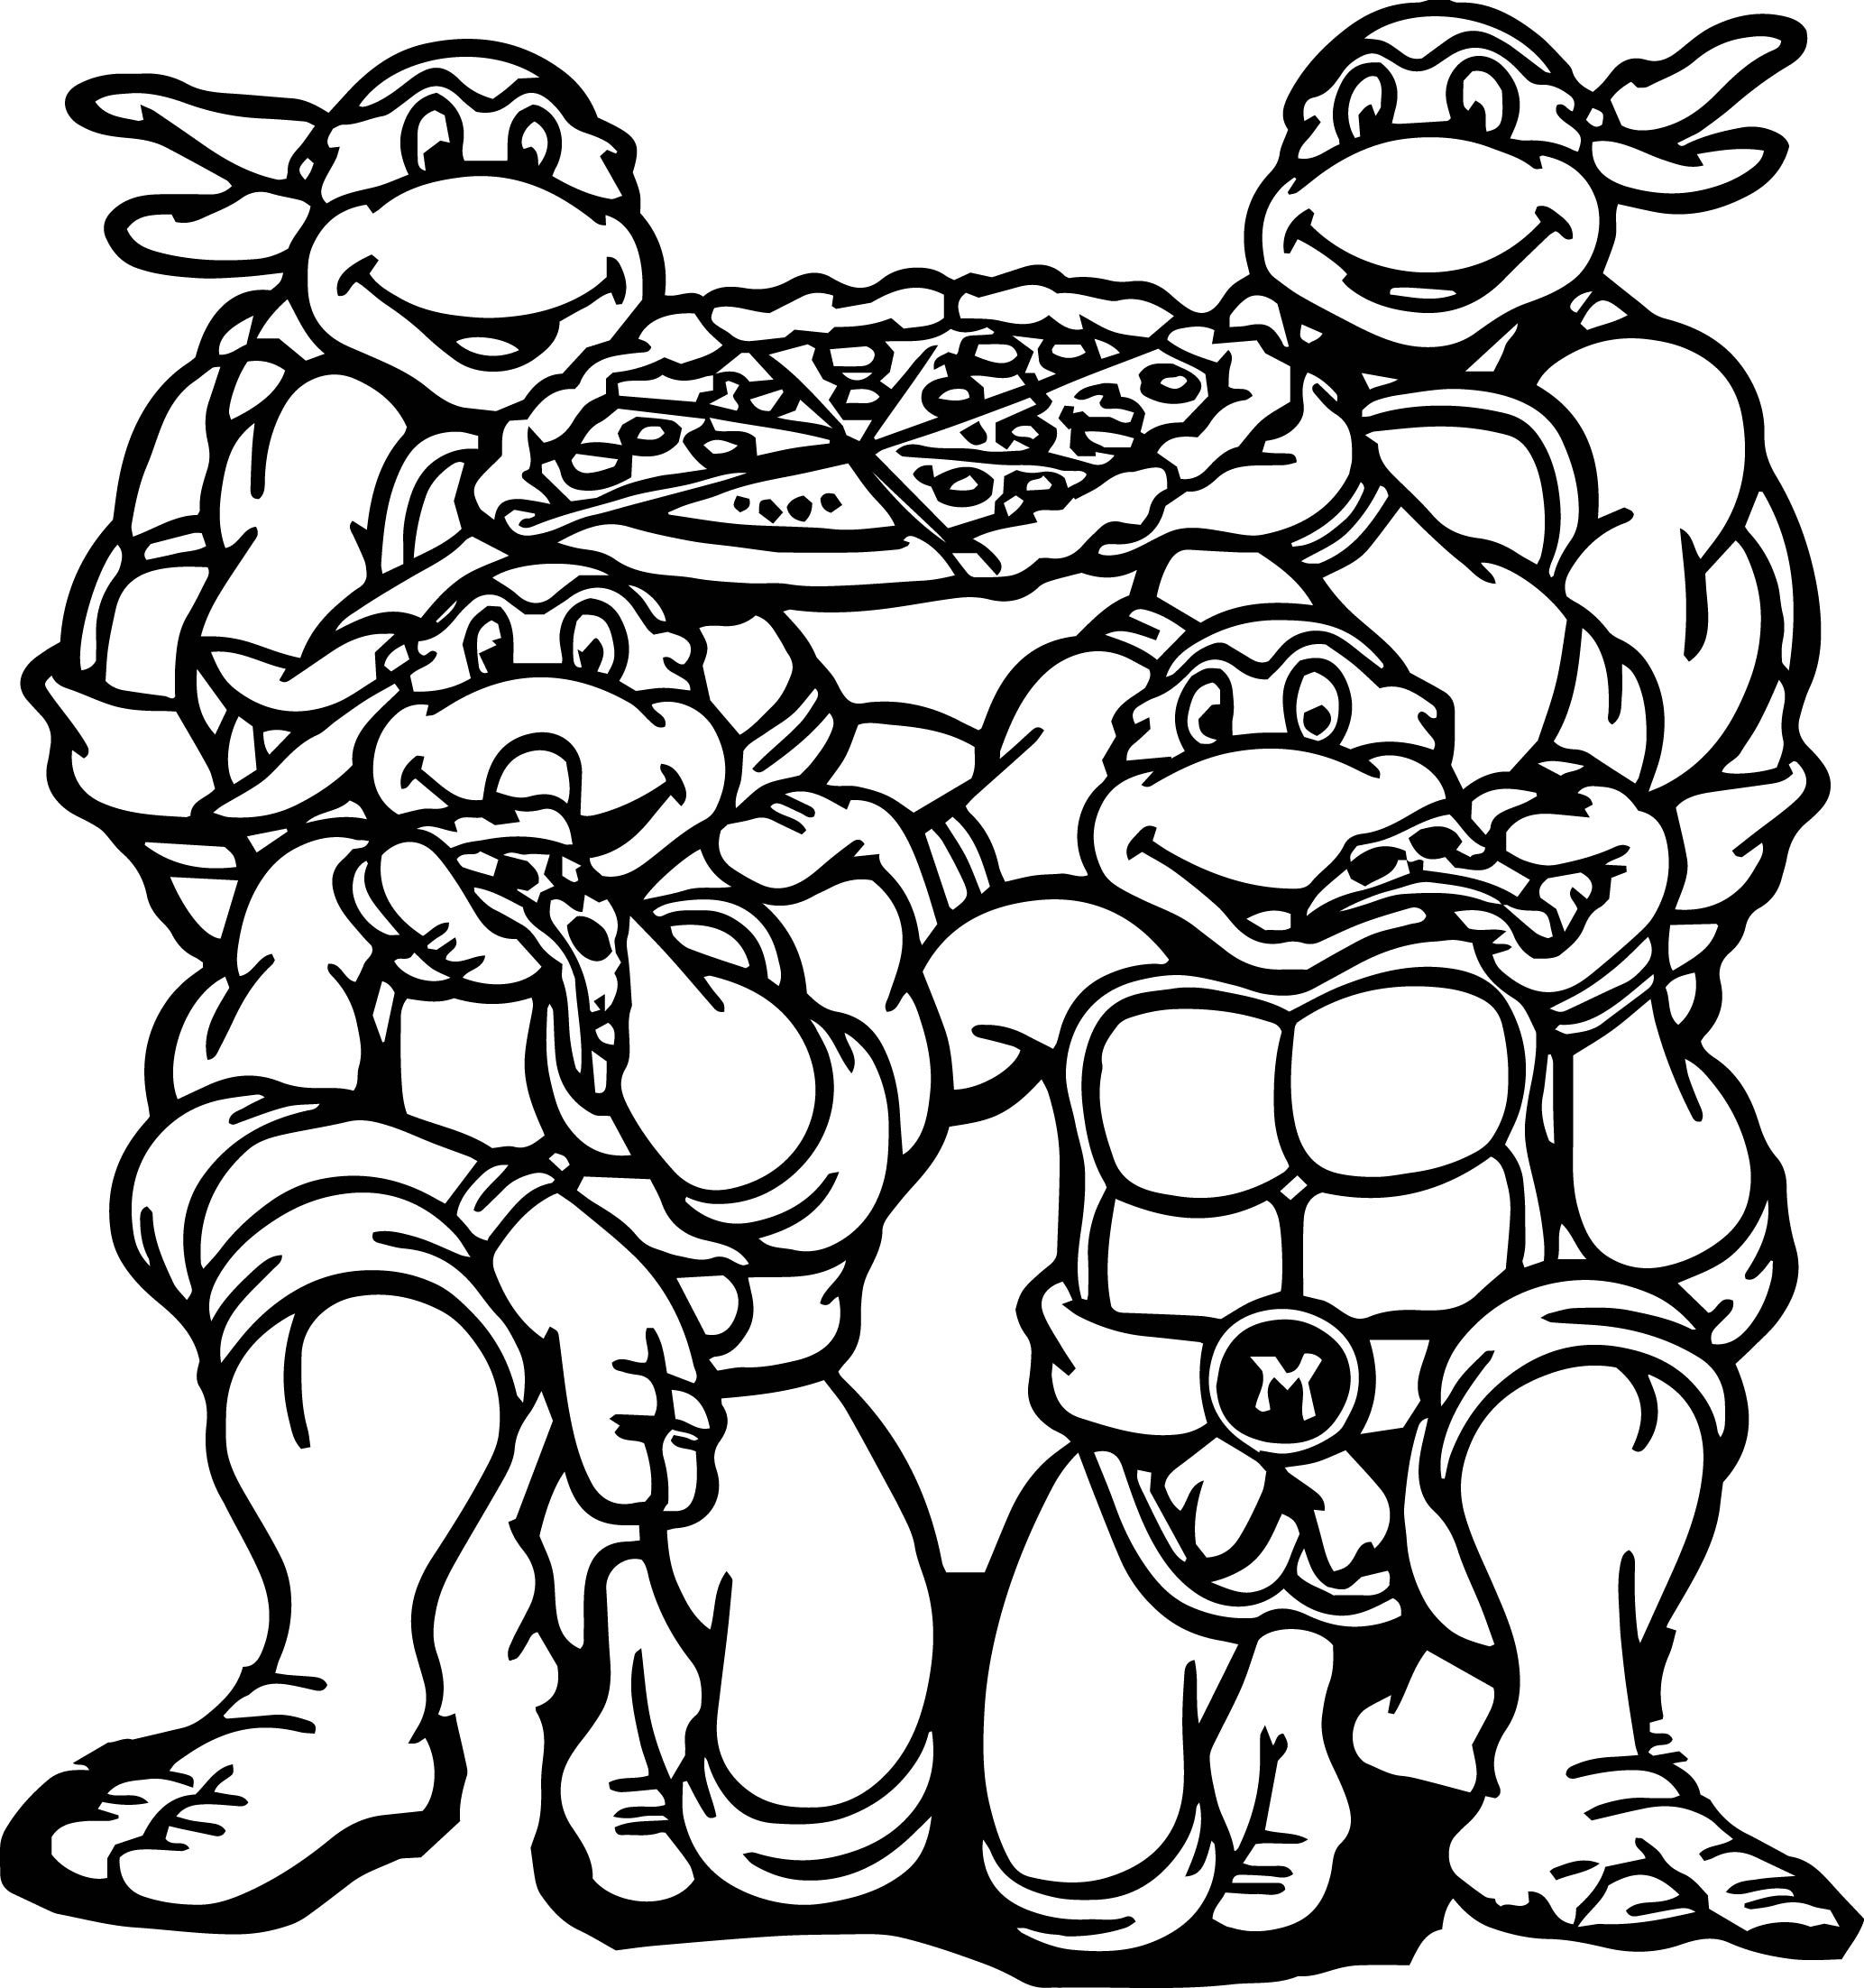 Ninja Turtle Drawing Pictures at GetDrawings.com | Free for personal ...